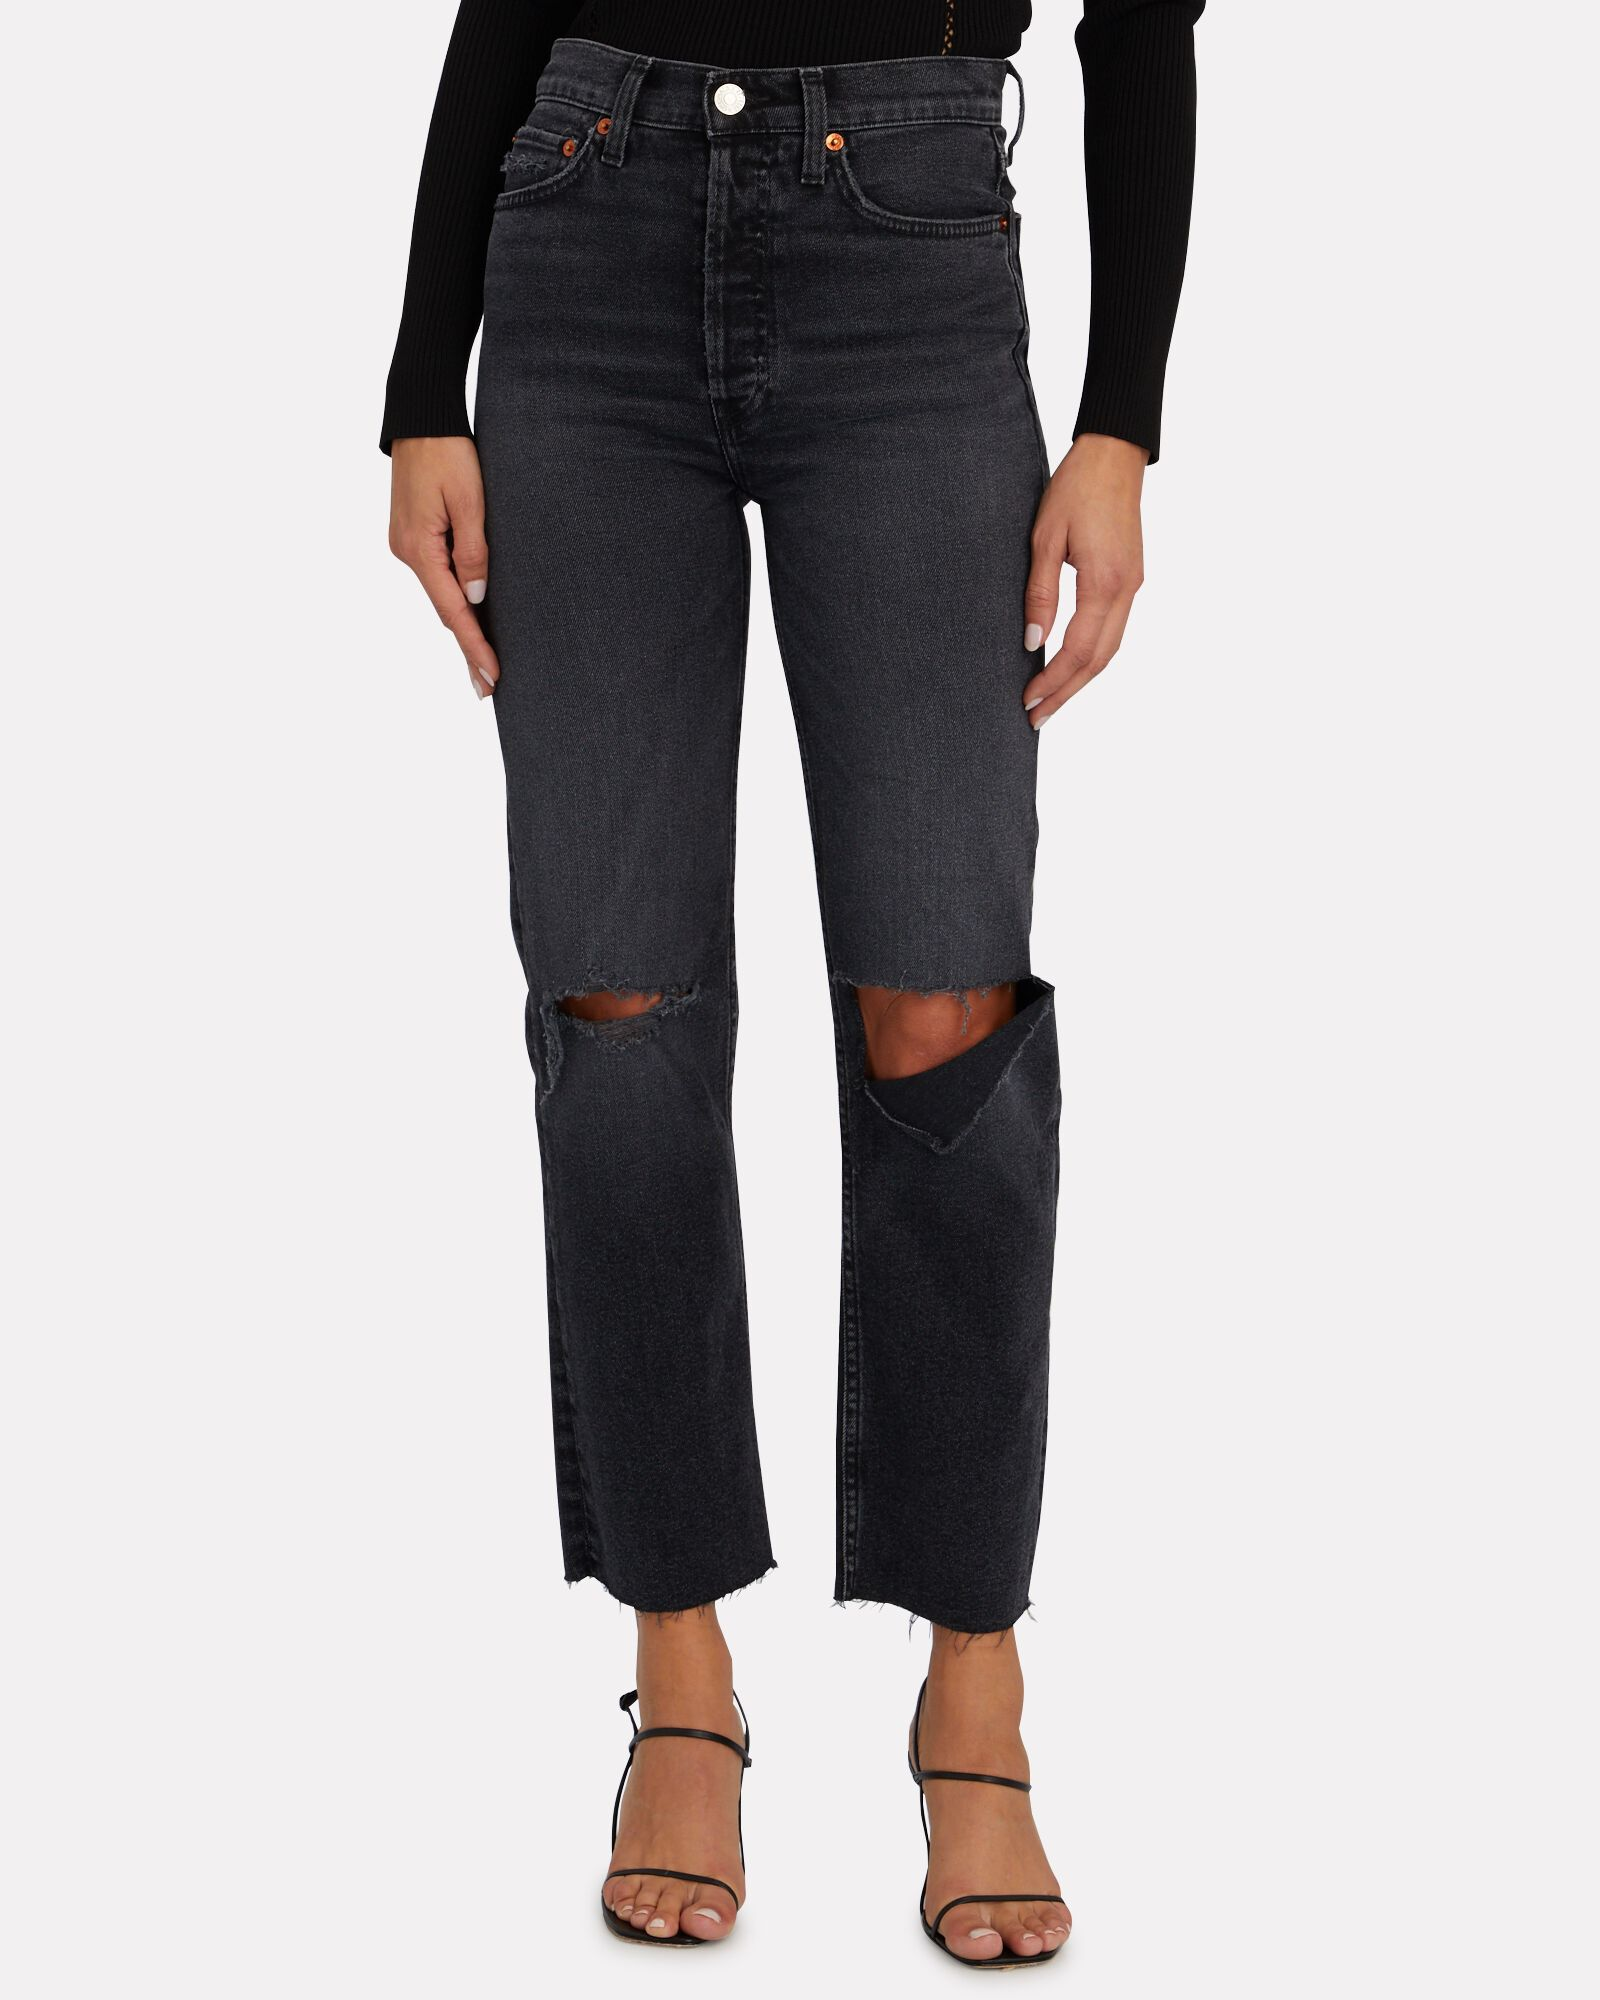 70s High-Rise Stove Pipe Jeans, FADED COAL, hi-res